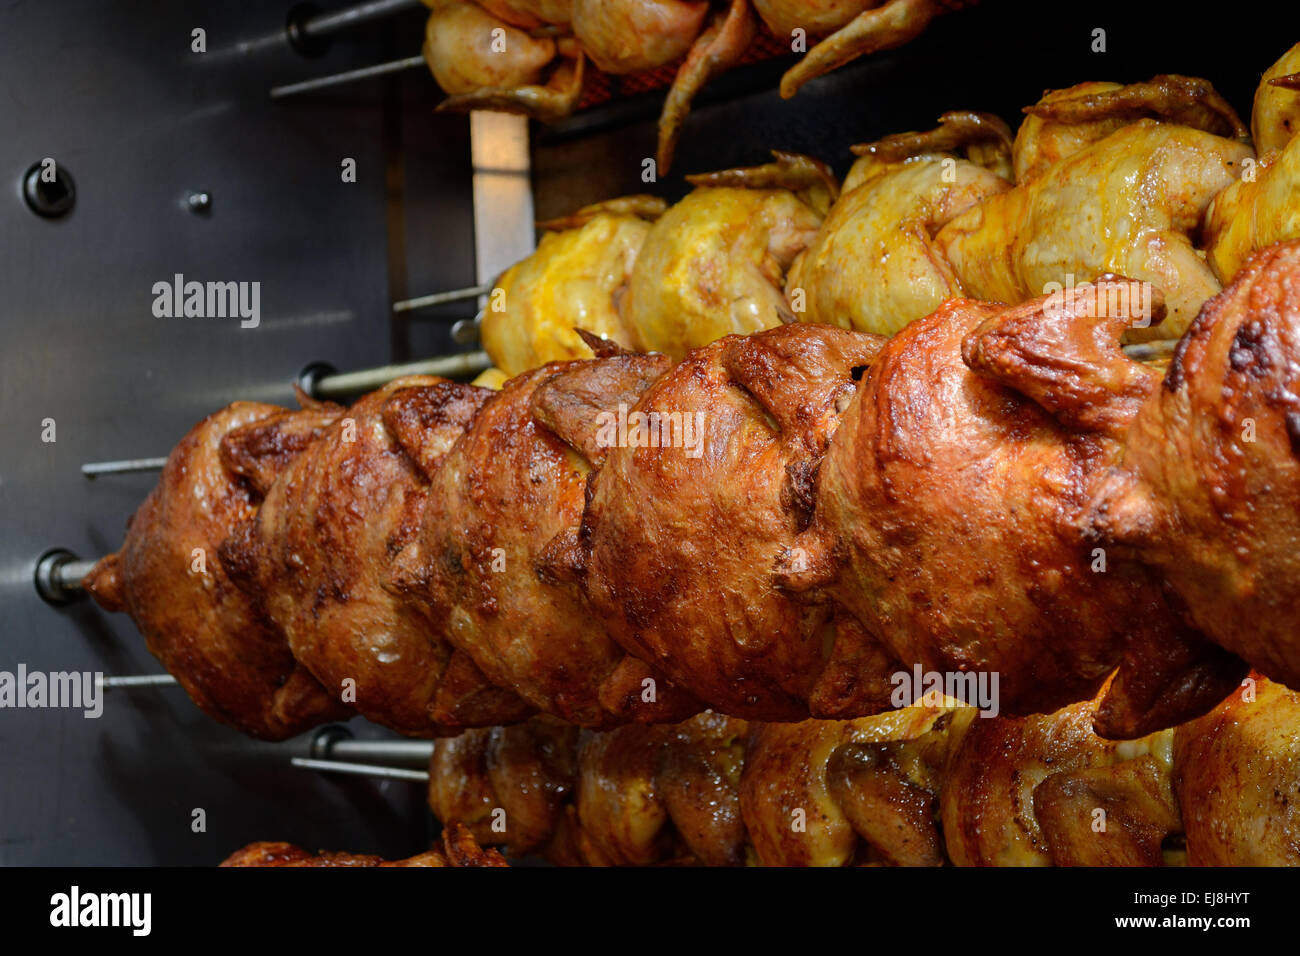 Poultry meat rotates on chicken griller Stock Photo